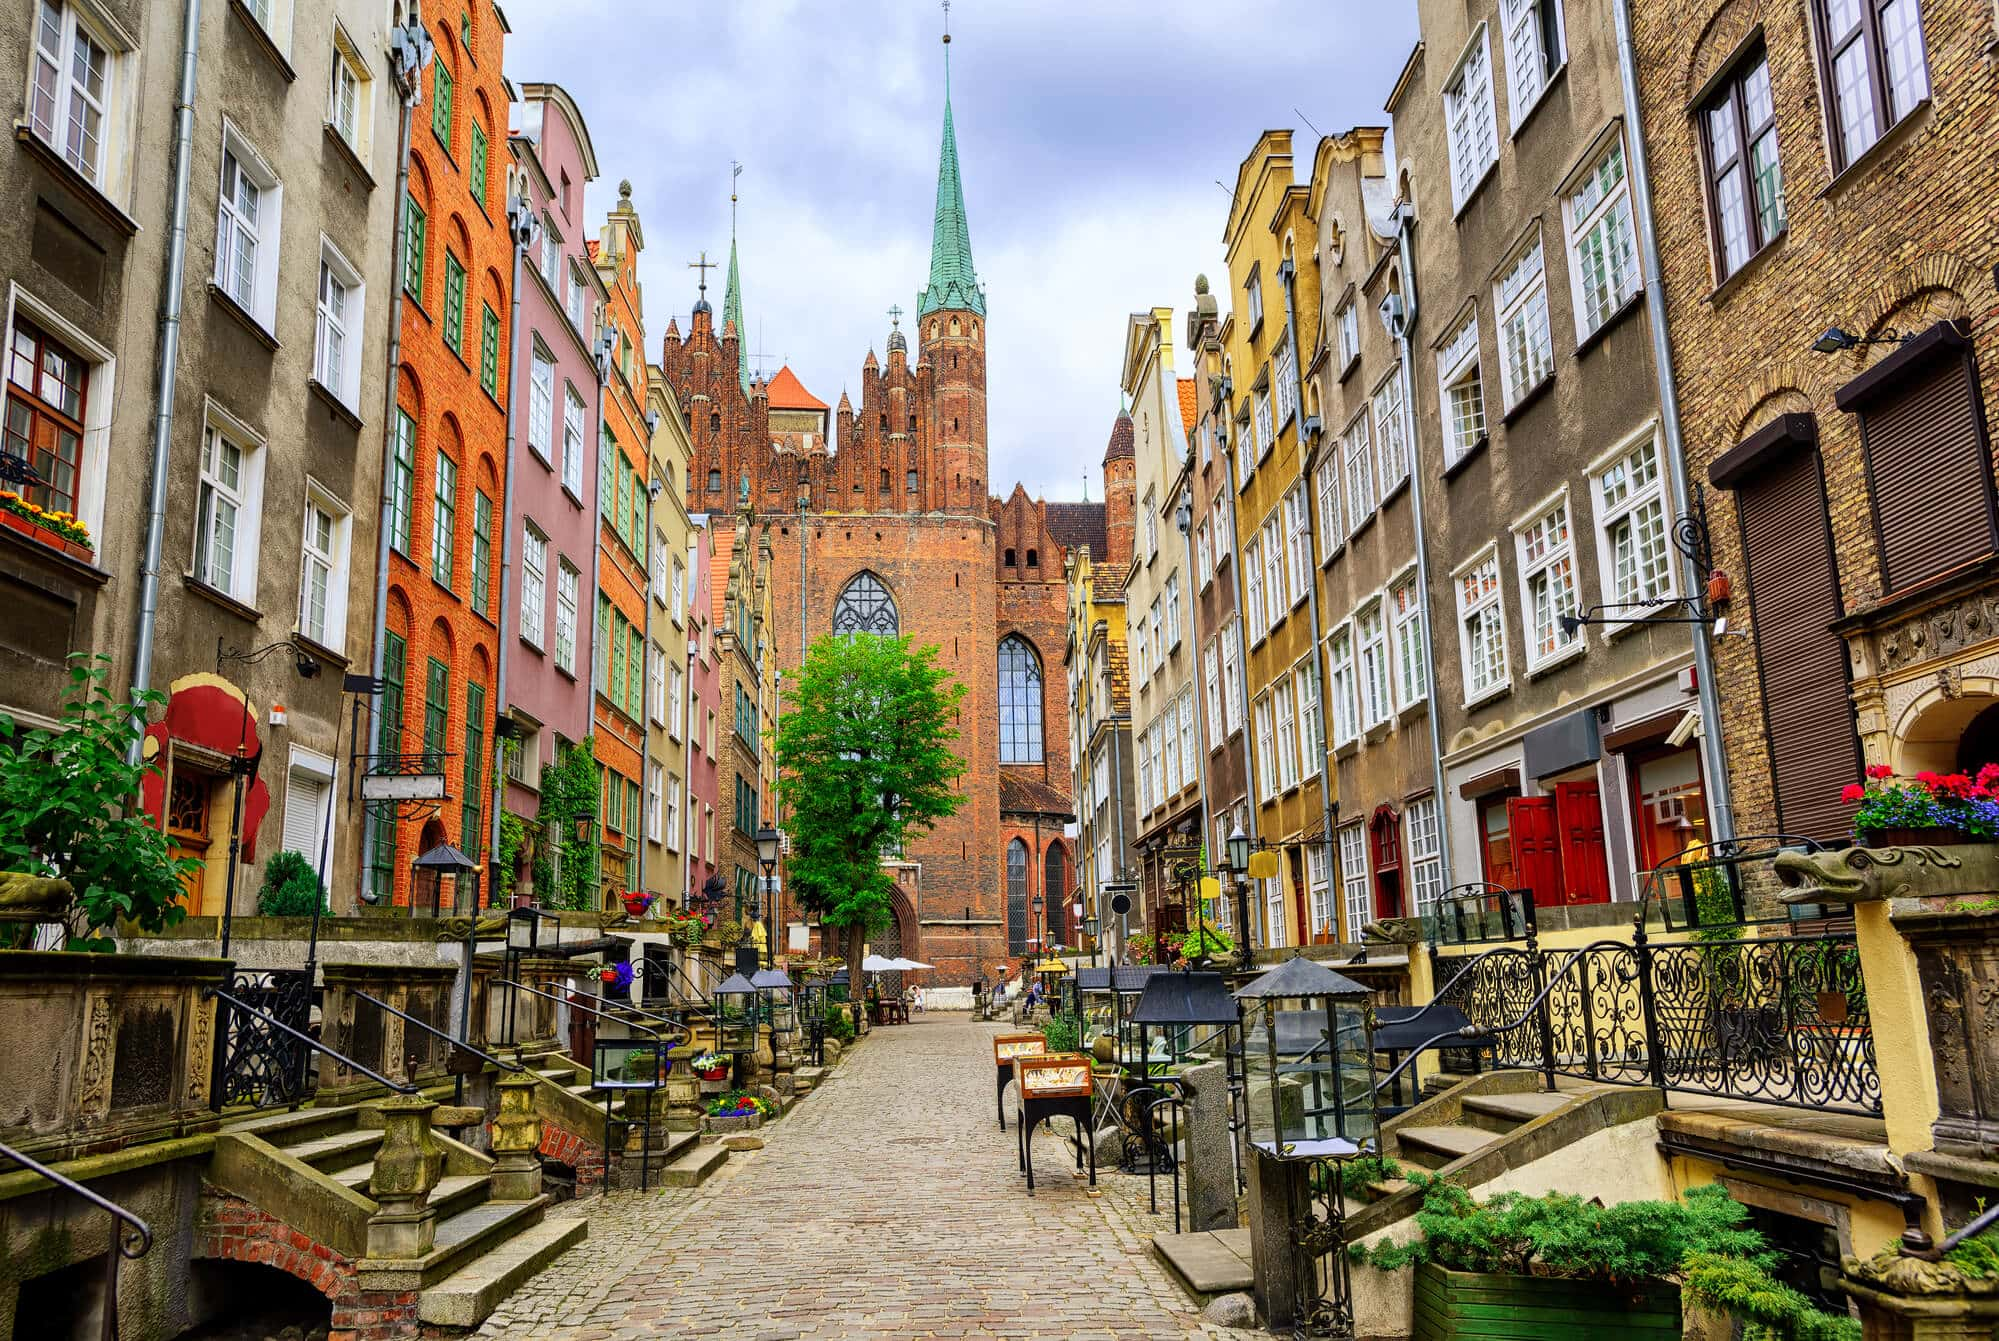 2 days in Gdansk, Poland - Mariacka Street with lots of amber shops and cafés